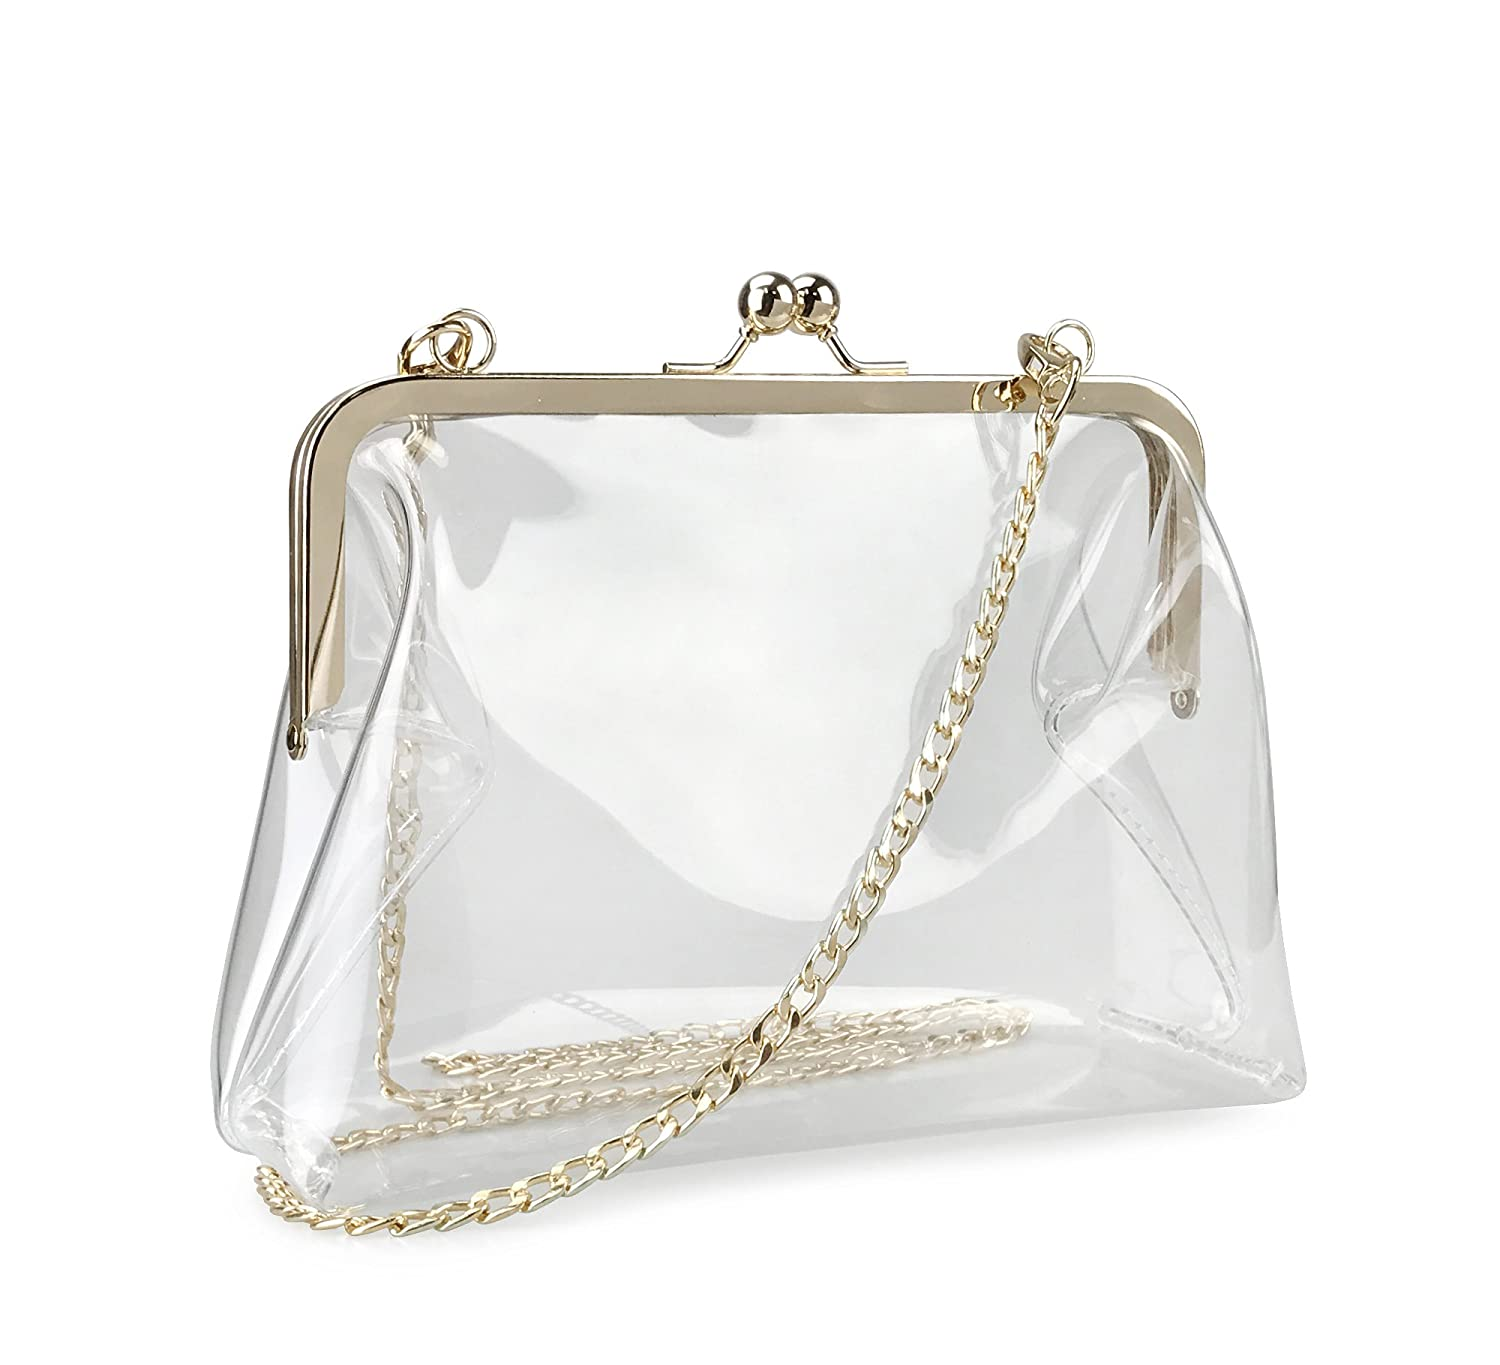 3a85a02a29a Hoxis Clear Transparent PVC Kiss Lock Chain Cross Body Bag Womens Clutch ( Clear)  Handbags  Amazon.com